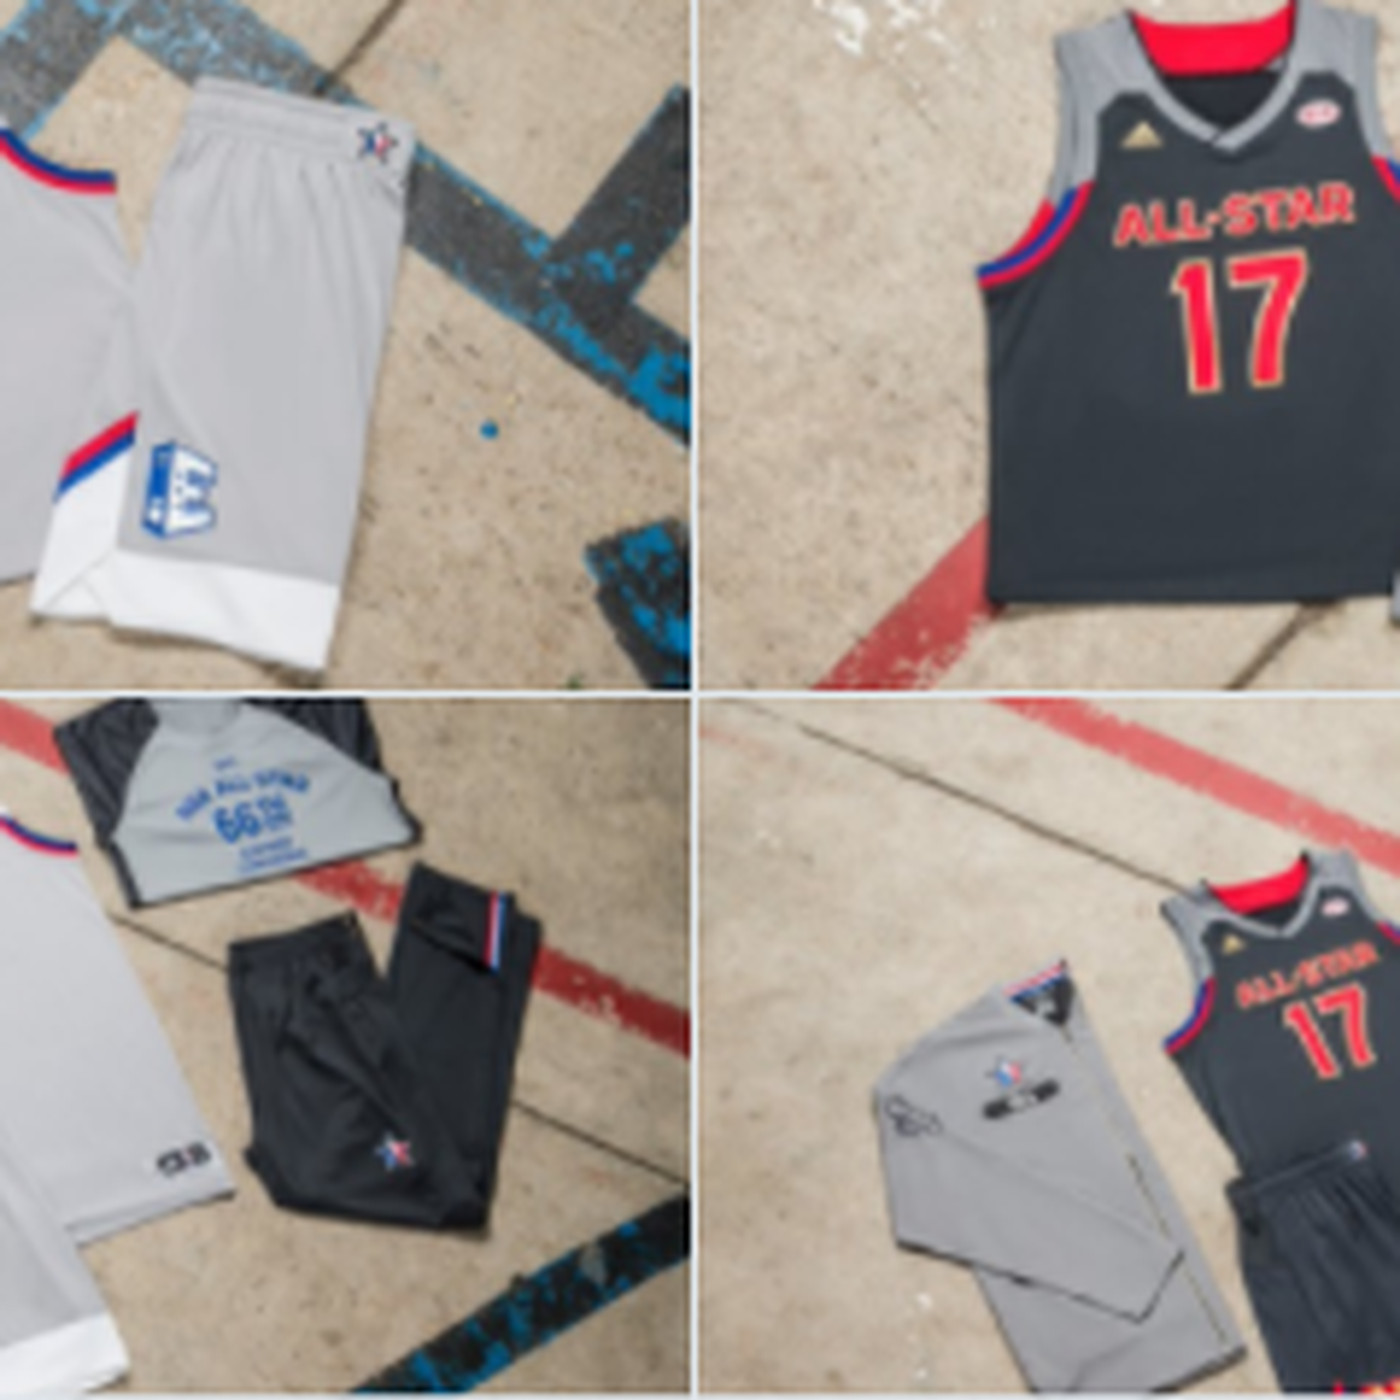 b68405d4bae The 2017 NBA All-Star Game jerseys have a modern look we all should  appreciate - SBNation.com